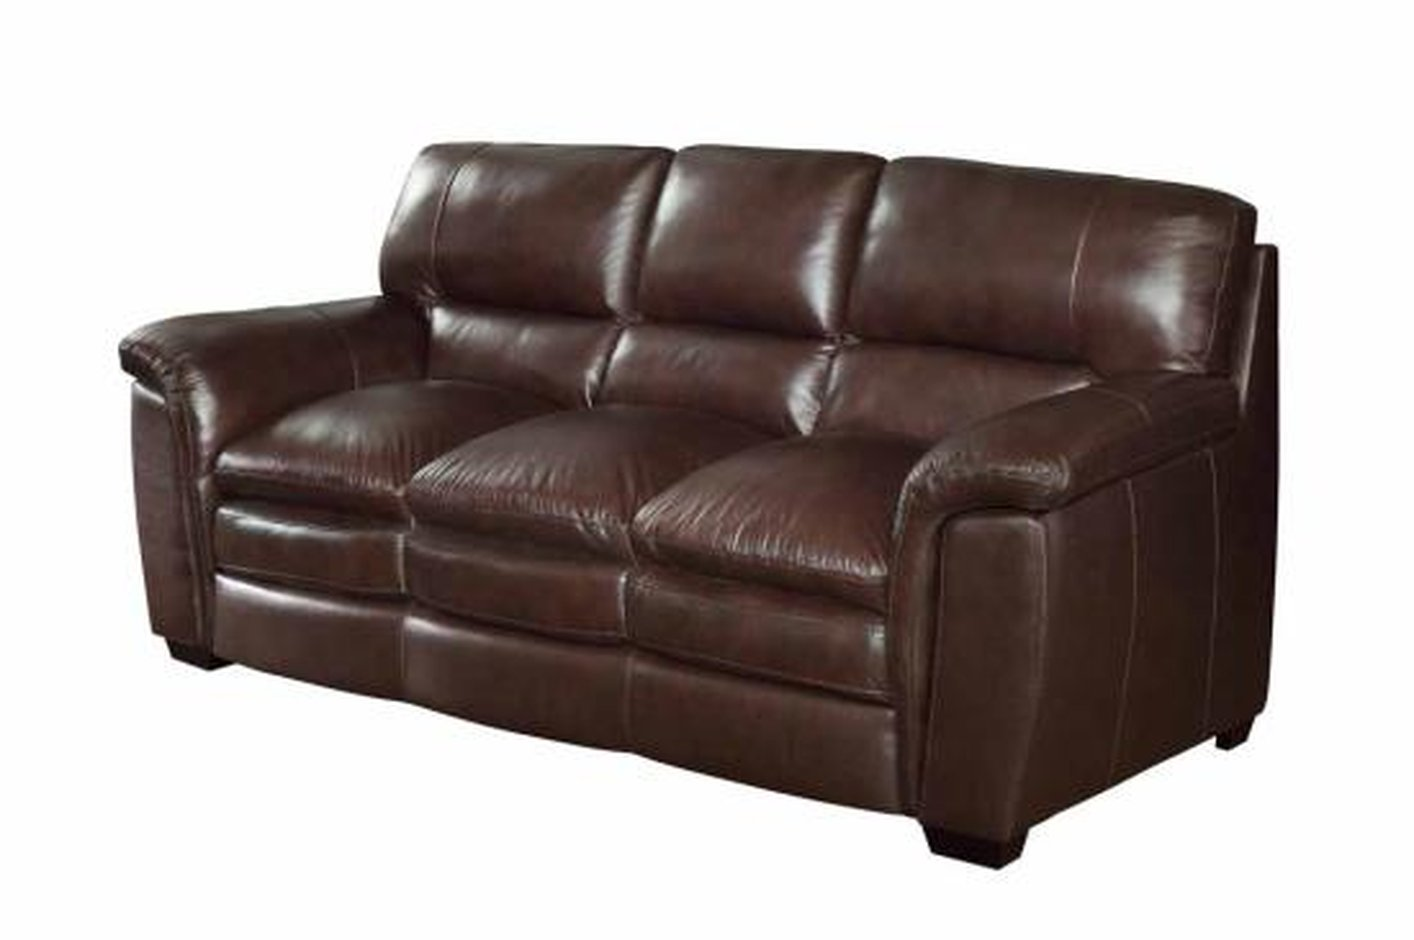 Brown Leather Sofa  StealASofa Furniture Outlet Los